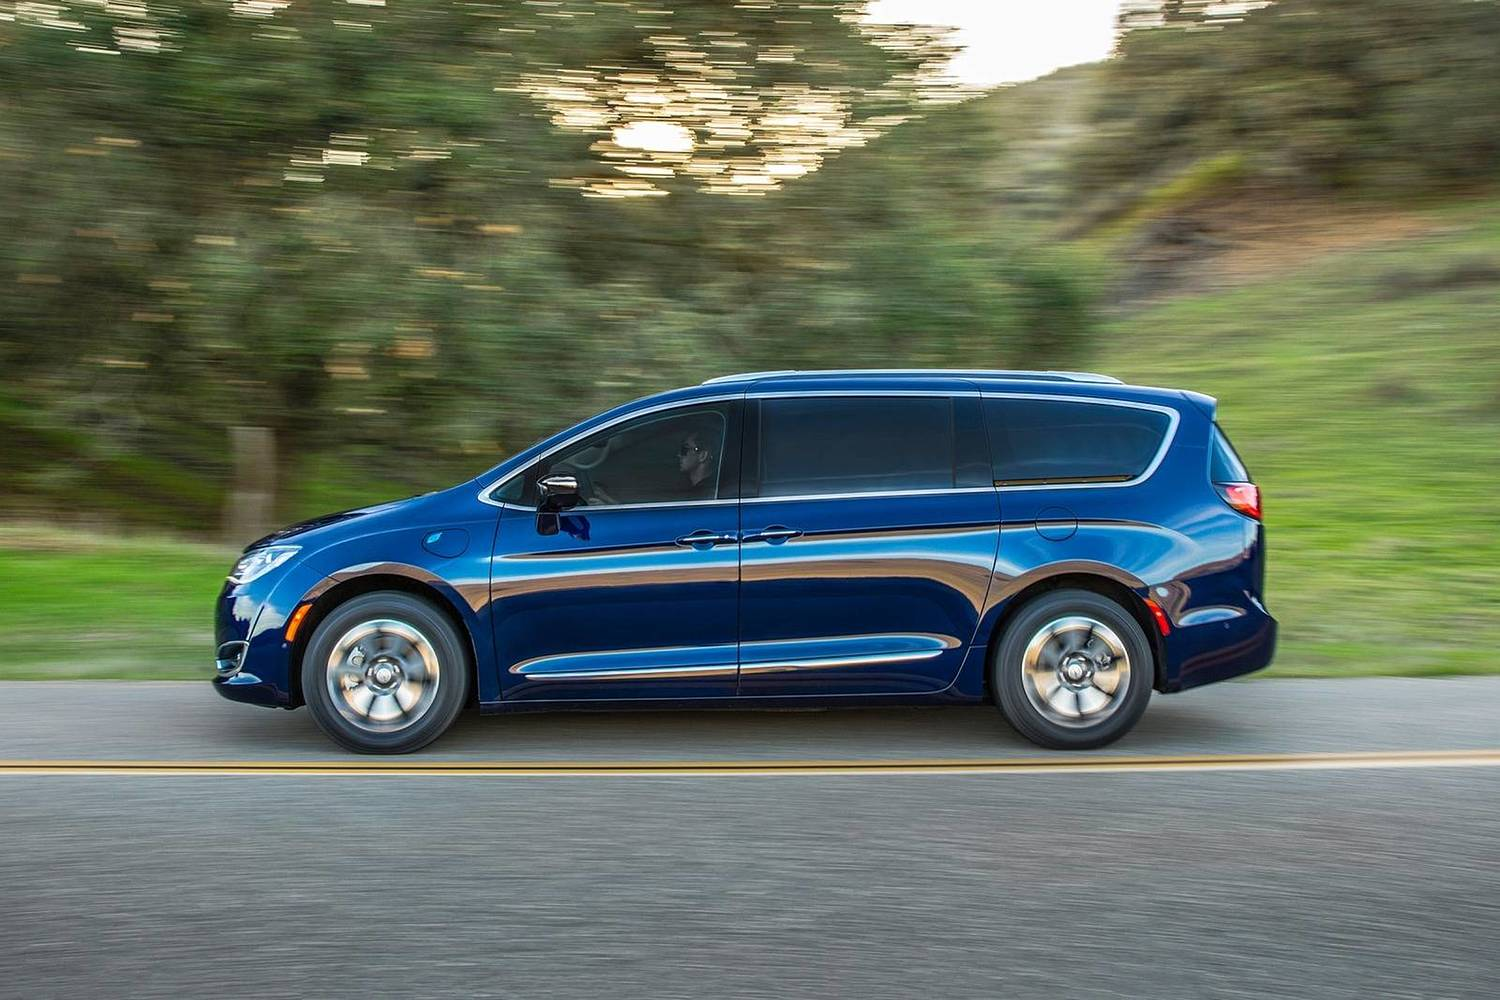 2018 Chrysler Pacifica Hybrid Touring Plus Passenger Minivan Profile Shown